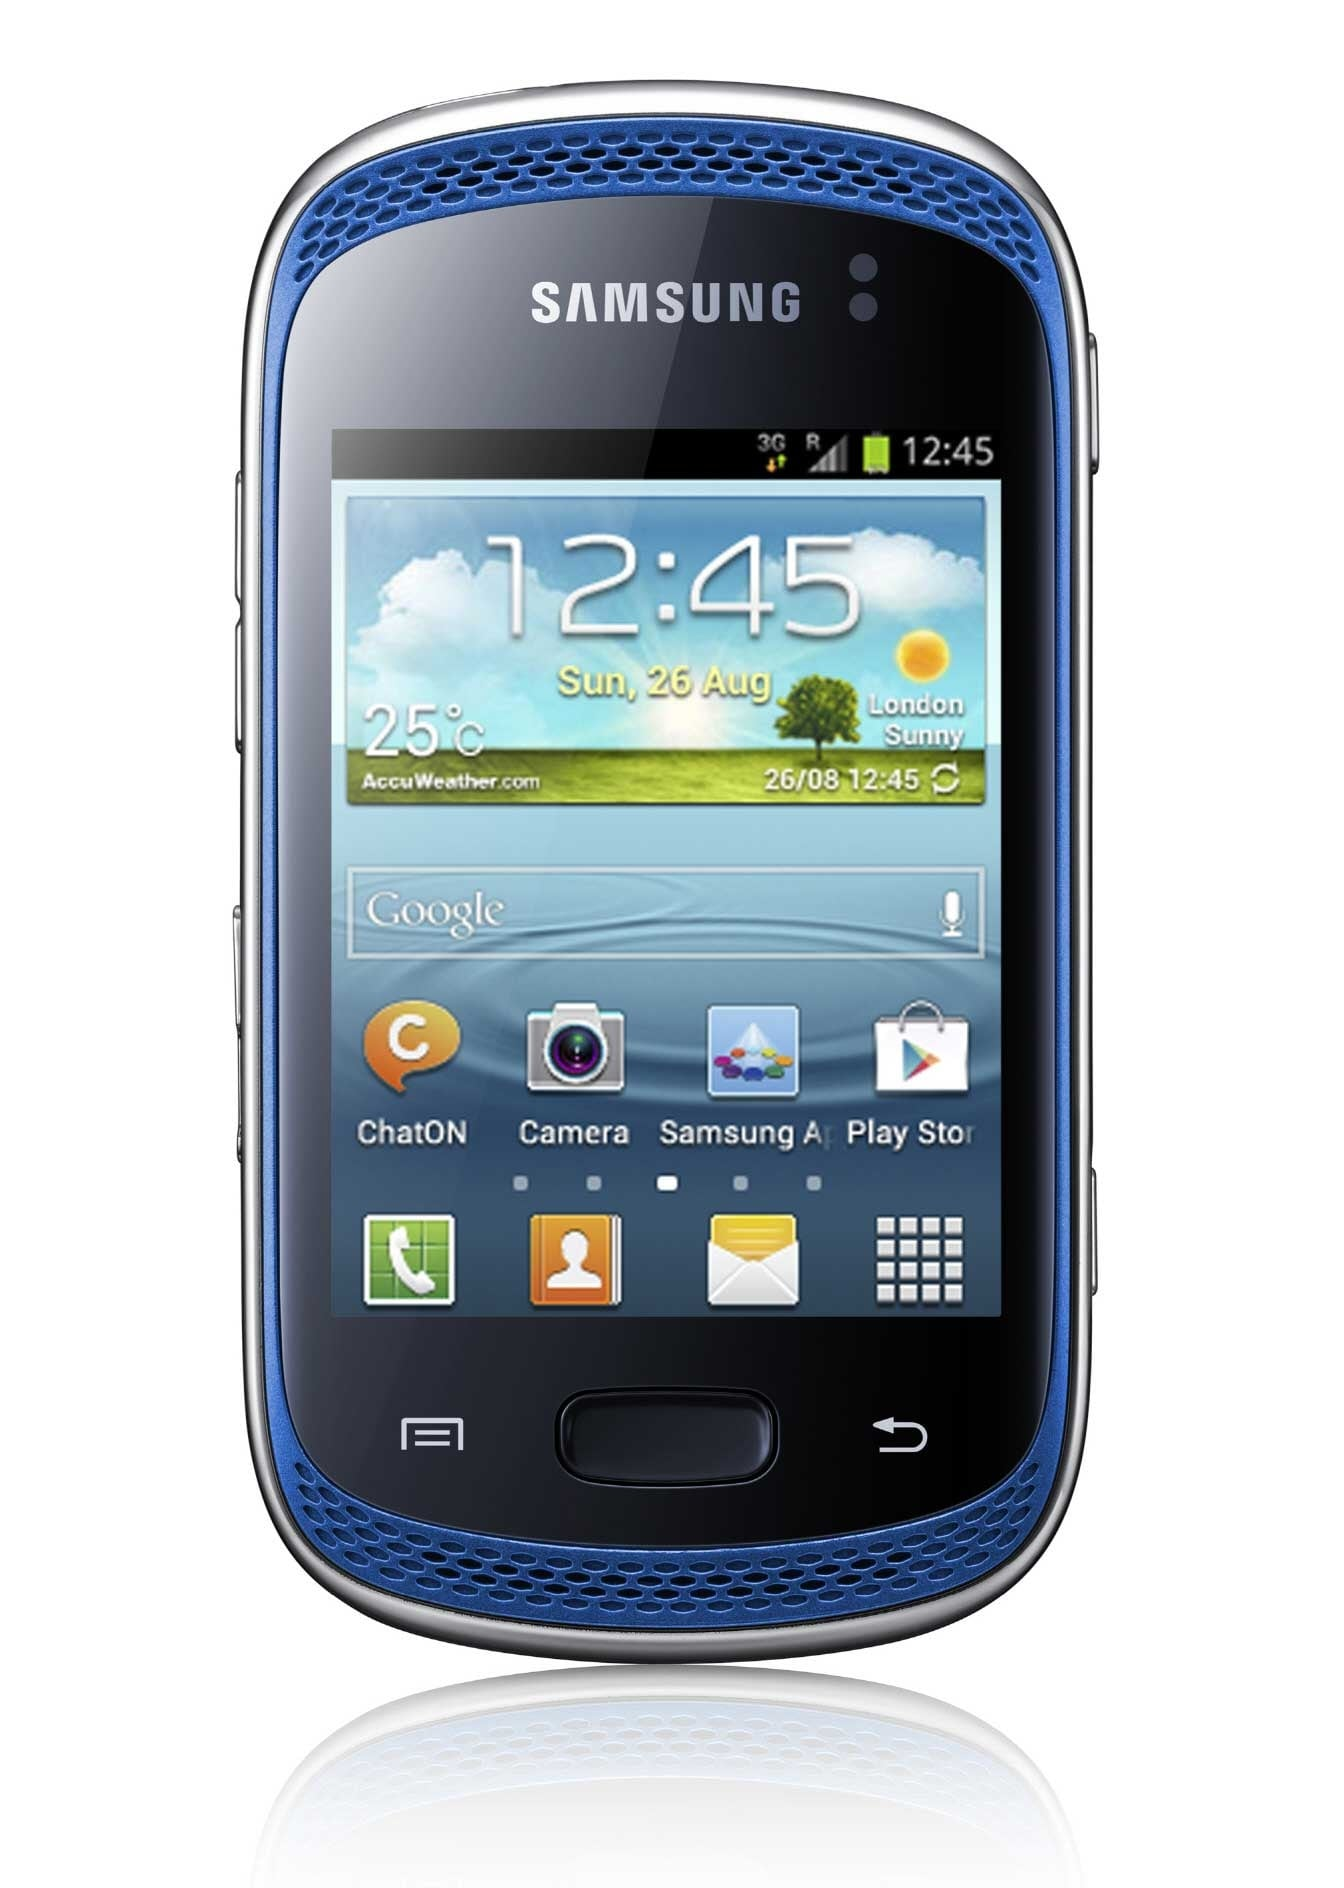 Samsung Galaxy Music S6012 GSM Unlocked Dual Sim Android Cell Phone - Blue